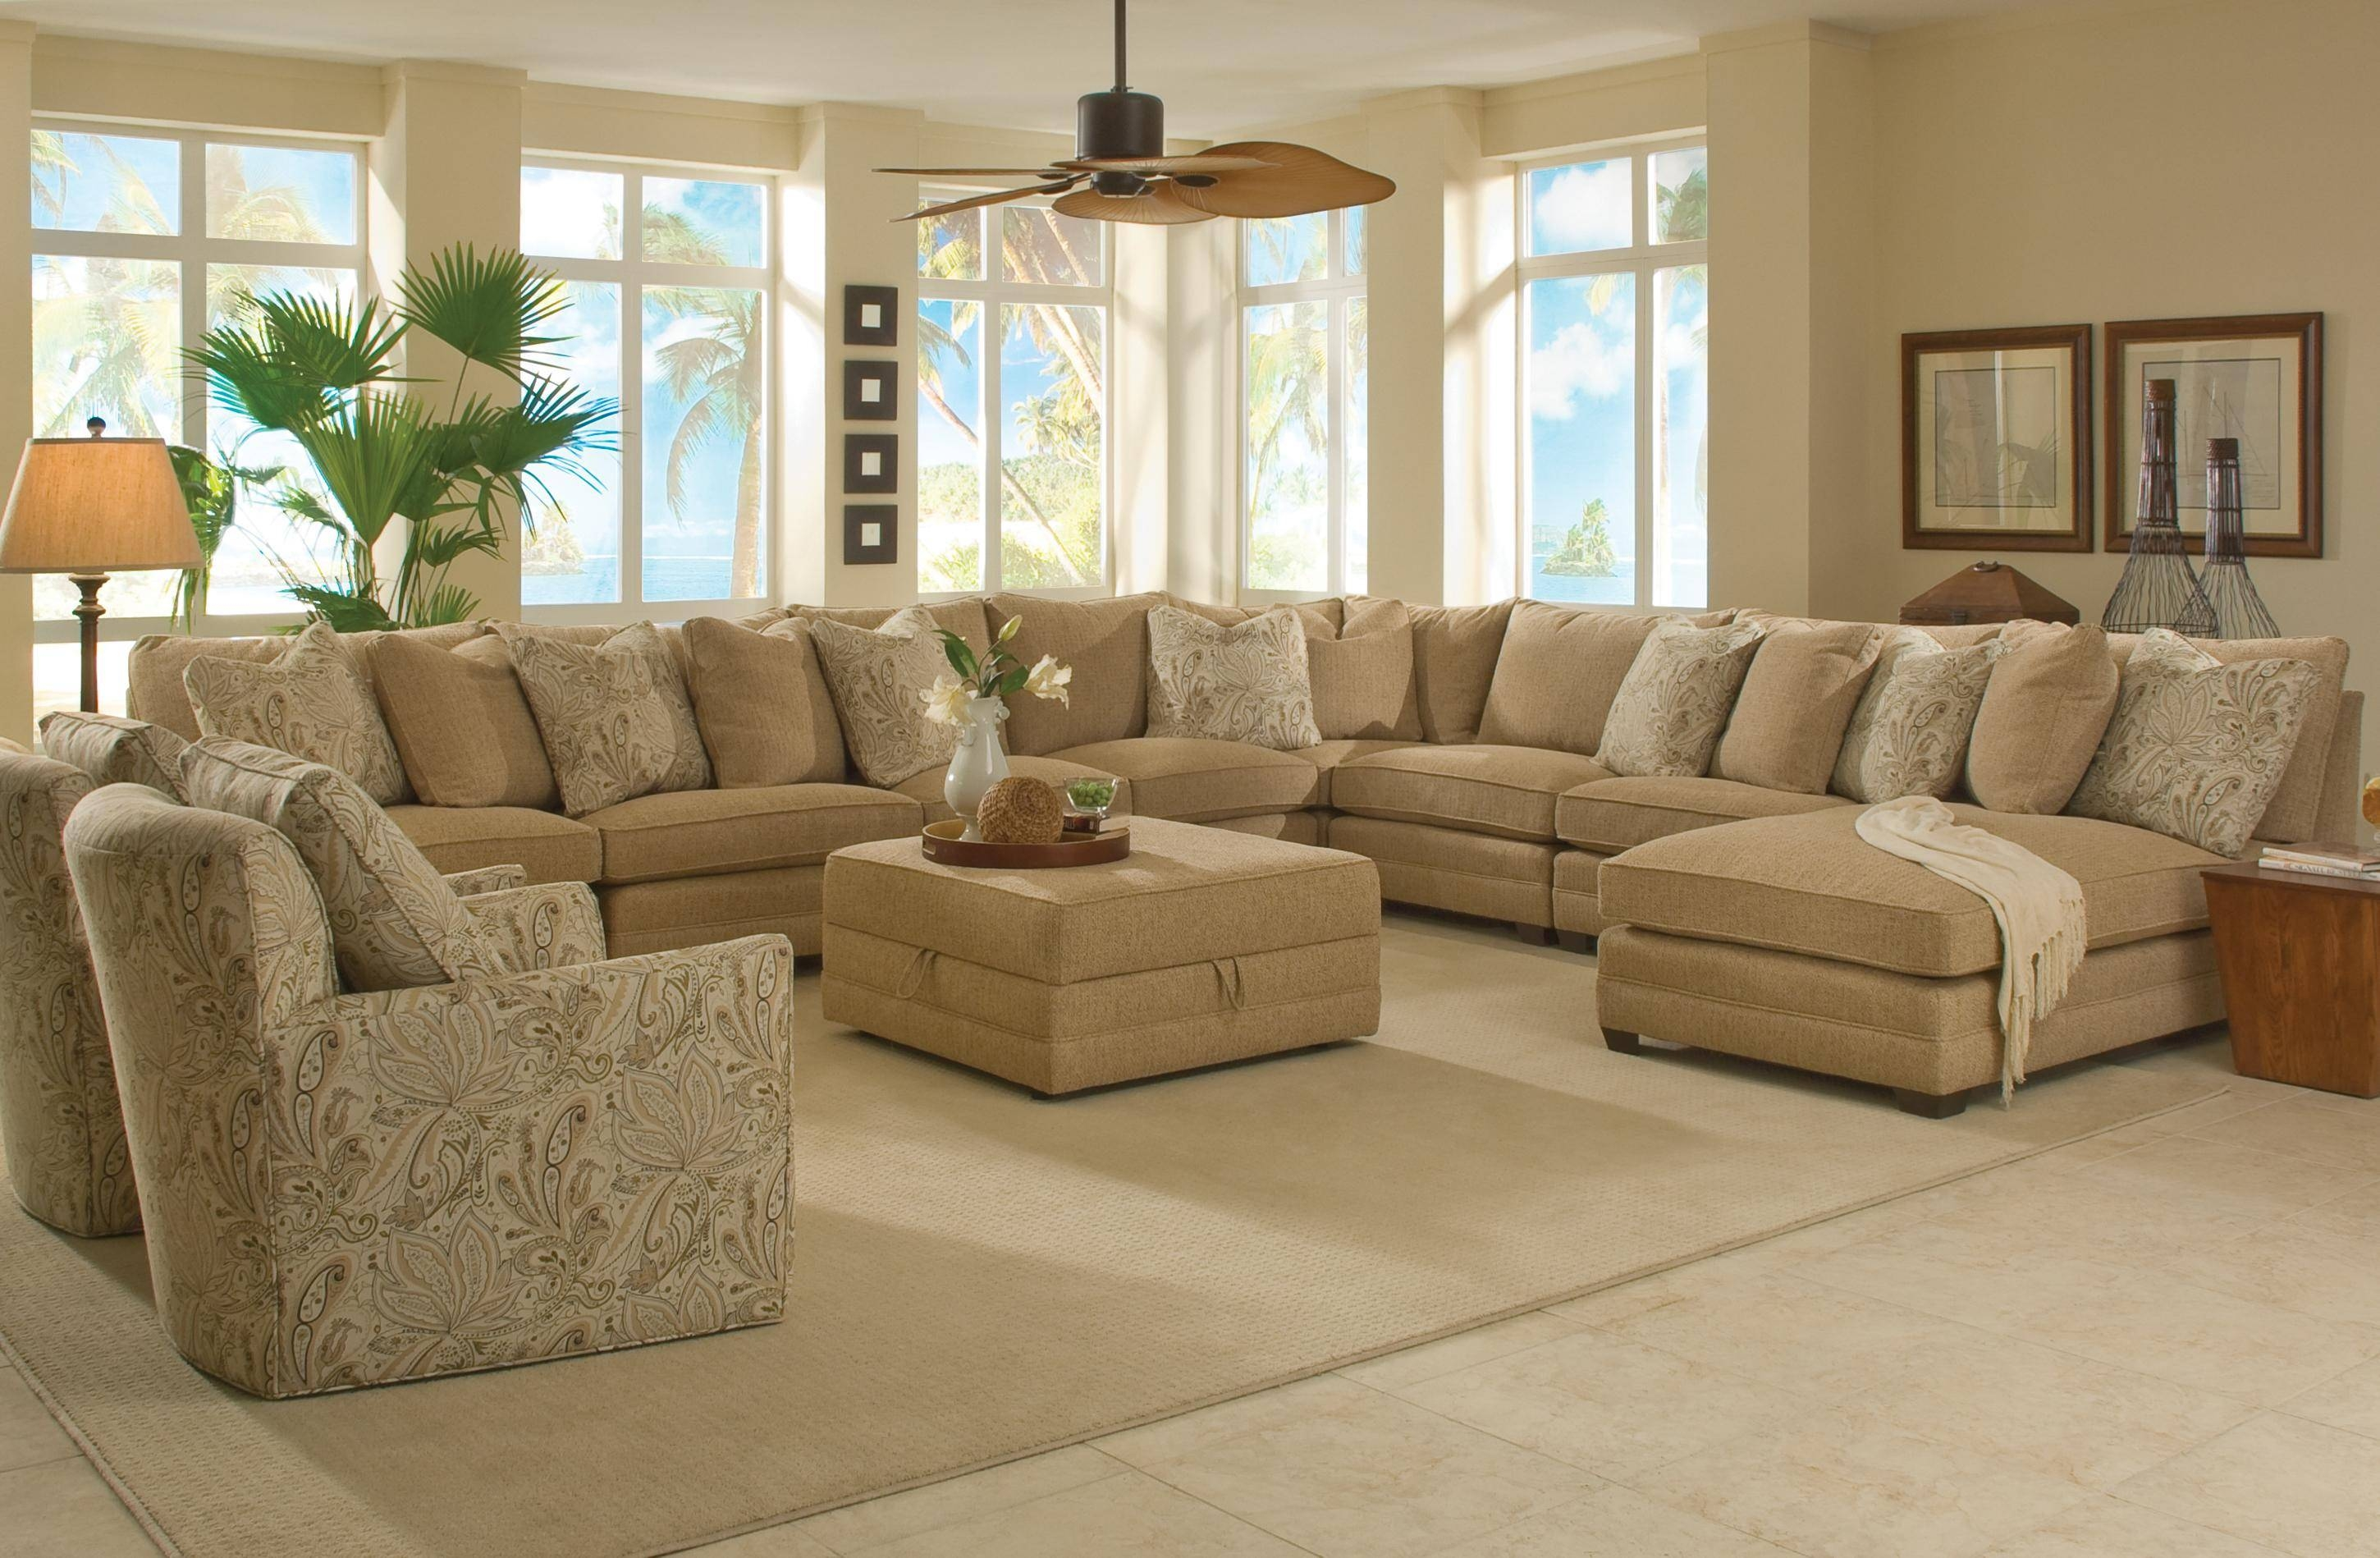 Sam Moore Margo Wide Sectional Sofa | Moore's Home Furnishings in Sam Moore Sofas (Image 7 of 15)